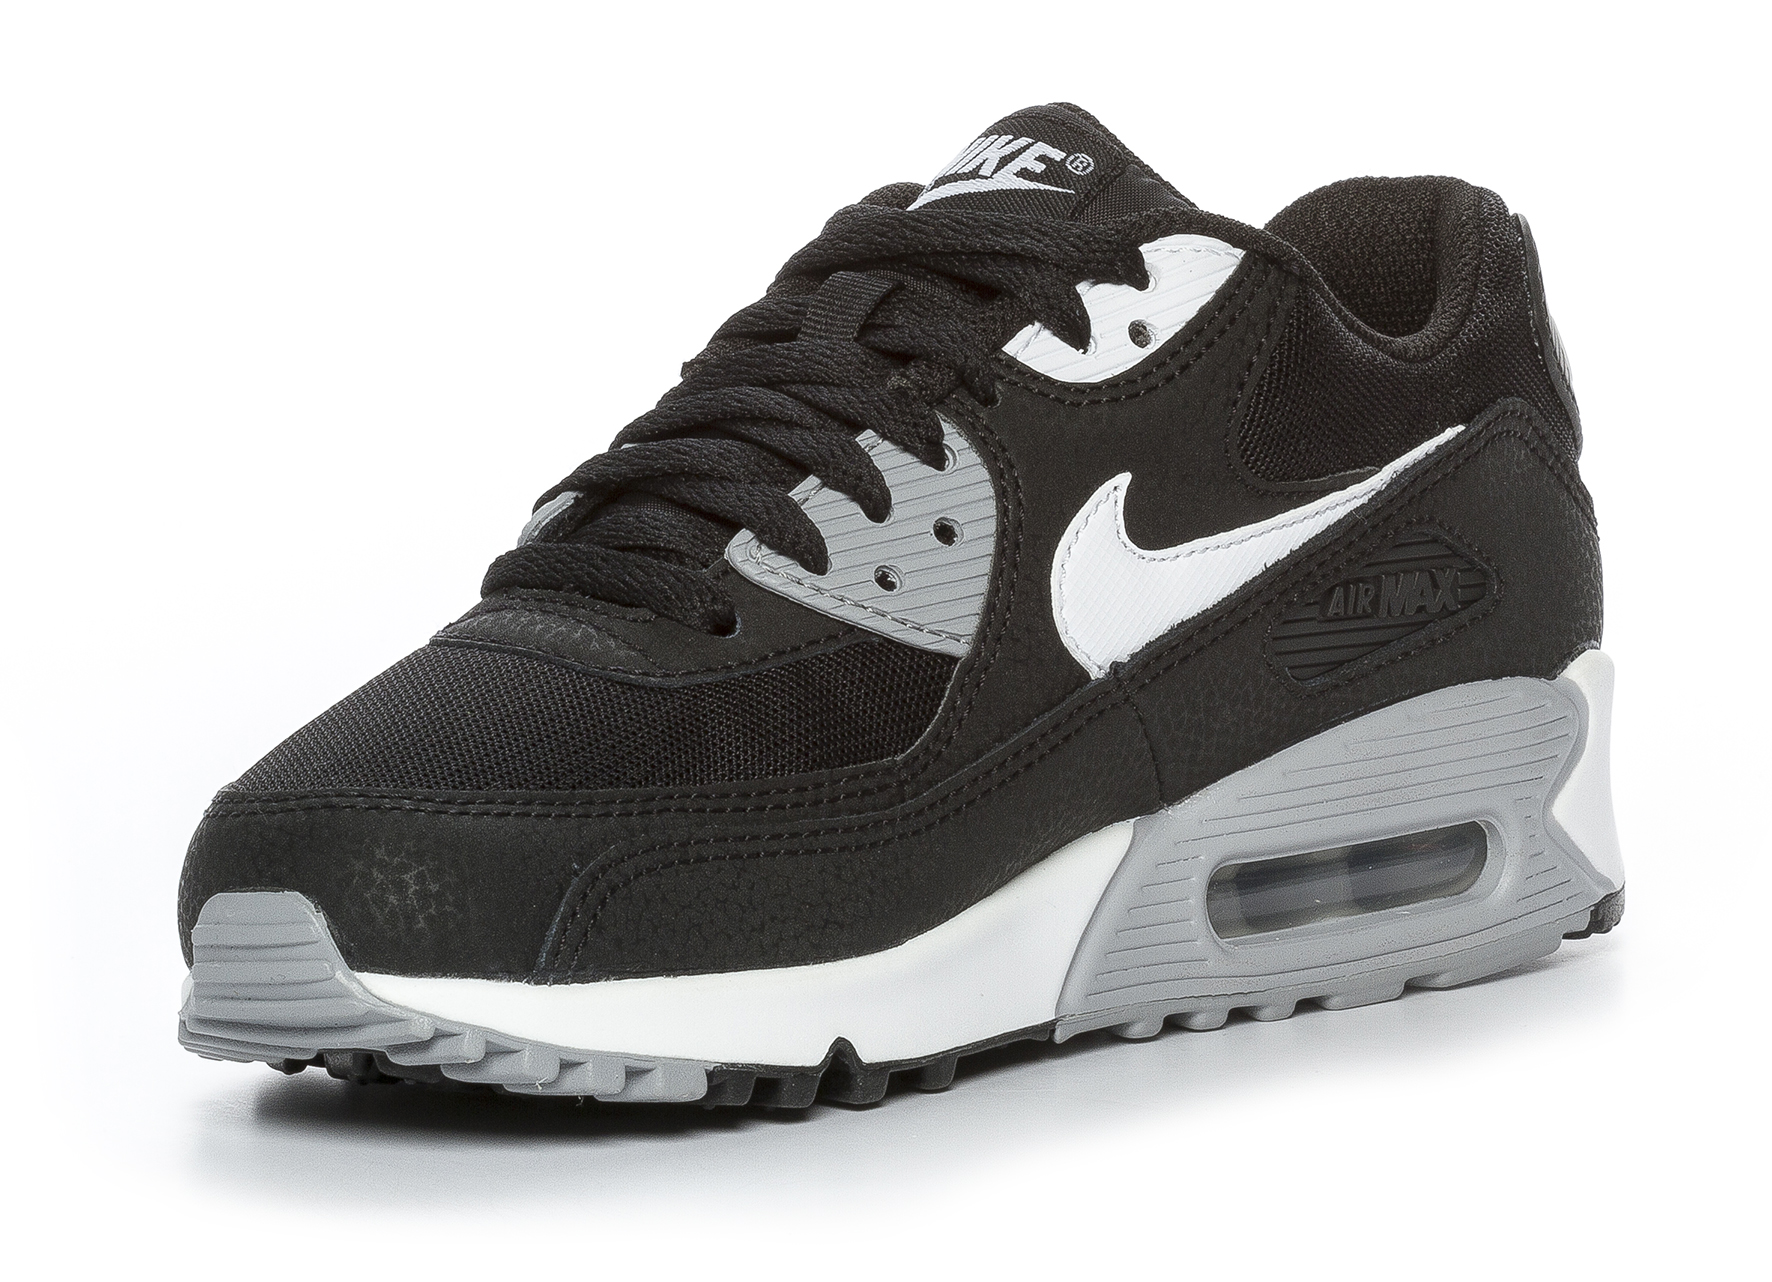 big sale 54799 0b2ec Nike Air Max 90 - Svarta 291959 feetfirst.se